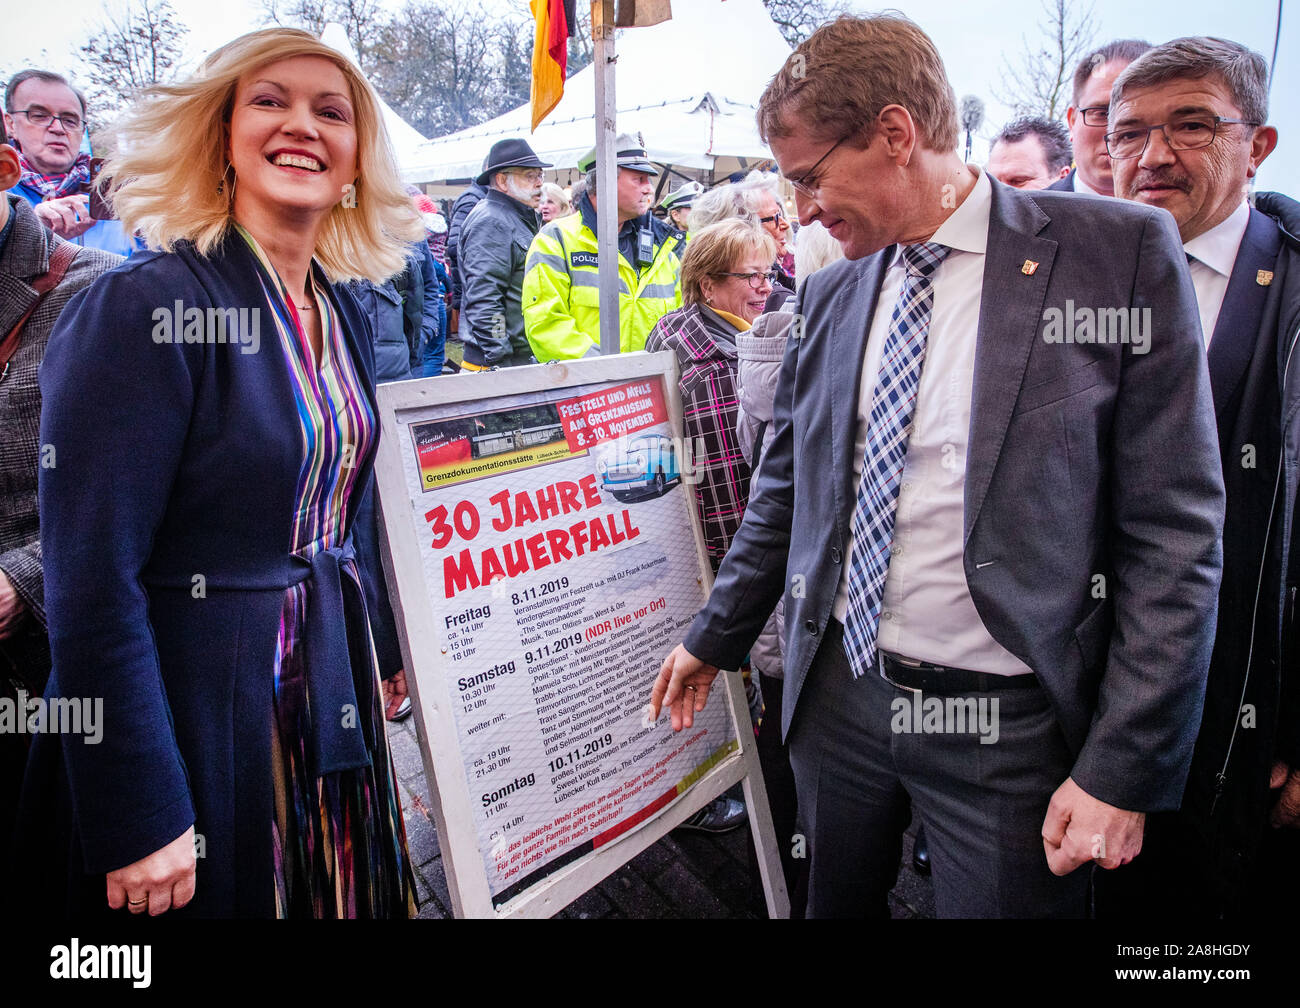 09 November 2019, Schleswig-Holstein, Lübeck-Schlutup: Manuela Schwesig (SPD), Prime Minister of Mecklenburg-Vorpommern, and Daniel Günther (CDU, r), Prime Minister of Schleswig-Holstein, are standing on the event poster at the border museum near the former Schlutup border crossing, celebrating the fall of the Berlin Wall 30 years ago. Schlutup was at the time the northernmost border crossing via which GDR citizens flocked to the West after the surprising opening of the border. Photo: Jens Büttner/dpa-Zentralbild/dpa Stock Photo